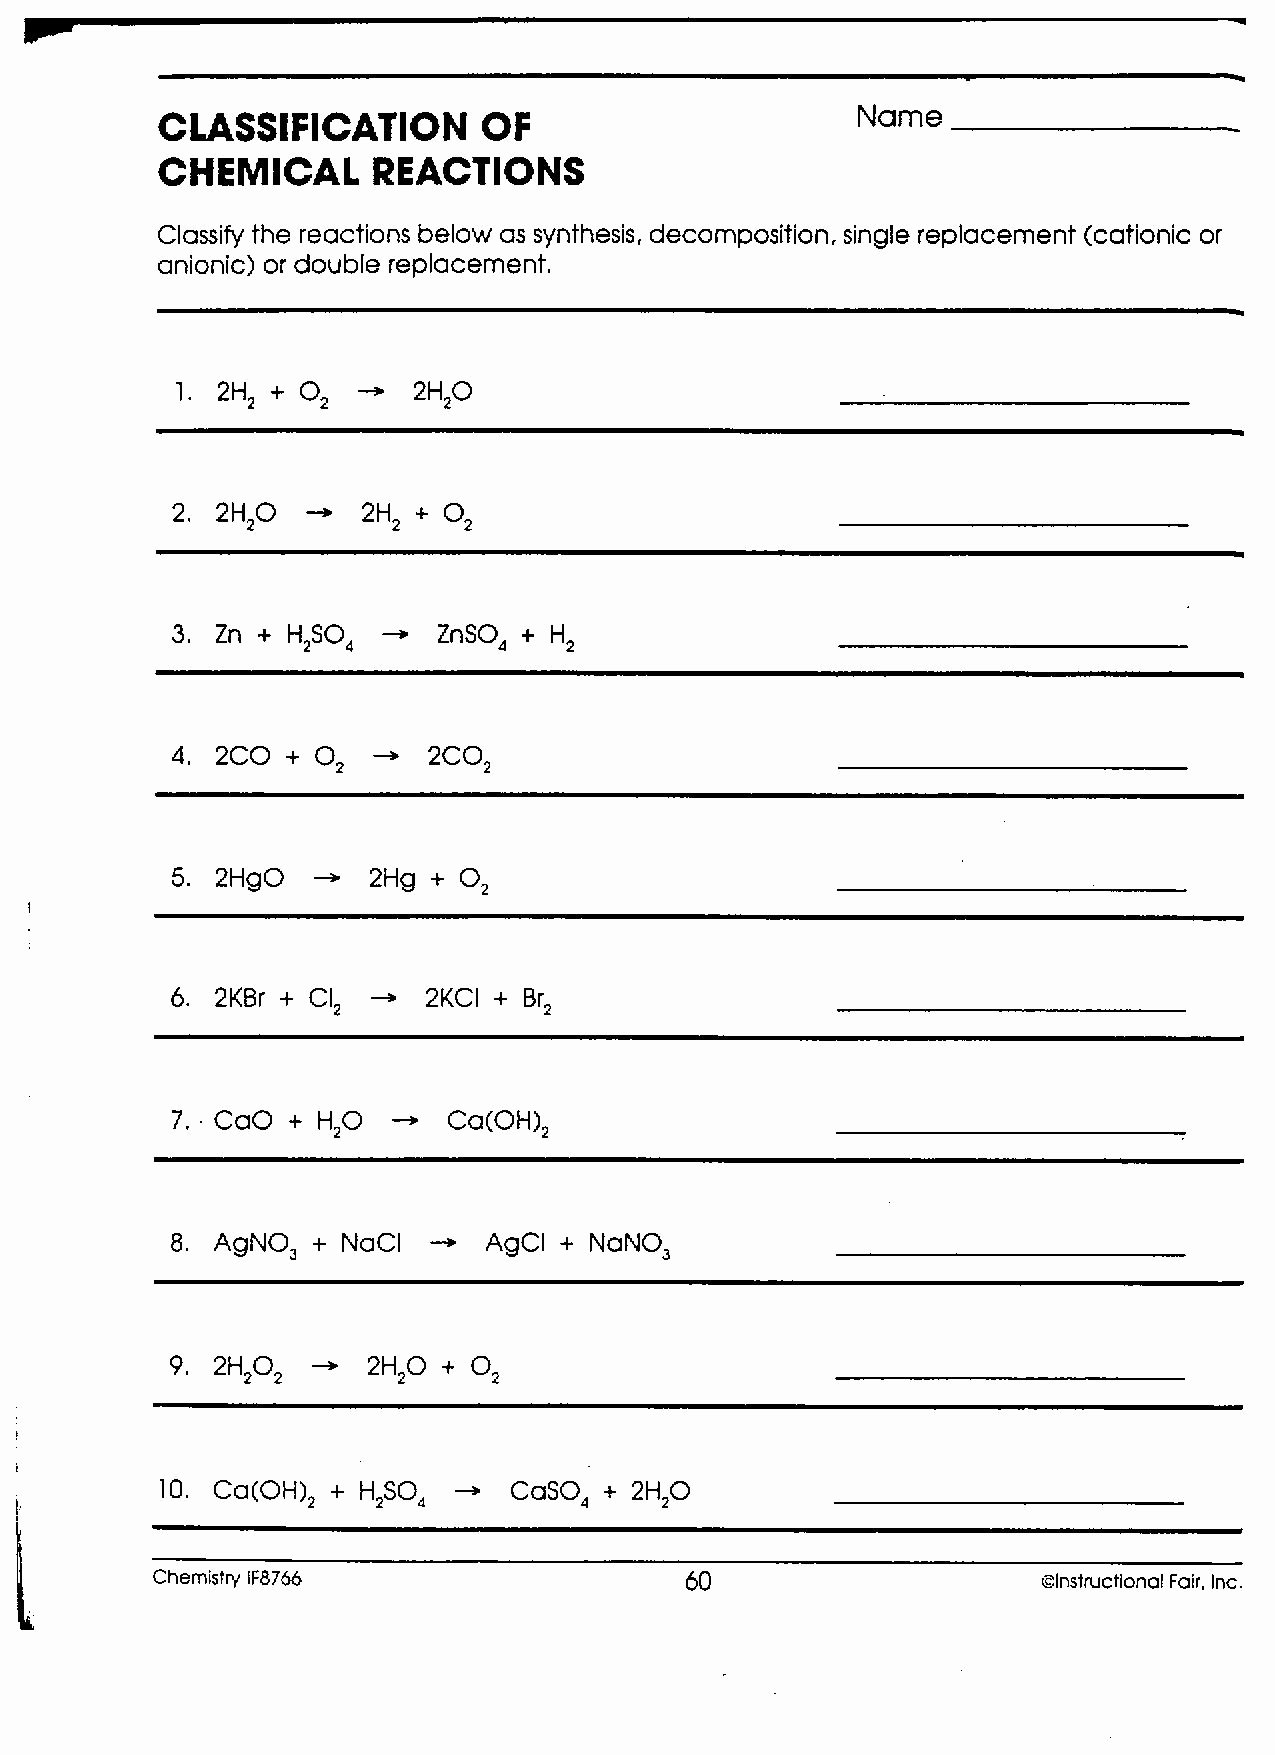 Chemical Reaction Type Worksheet Luxury Chemistry Ia Mr Phelps Big Rapids Hs